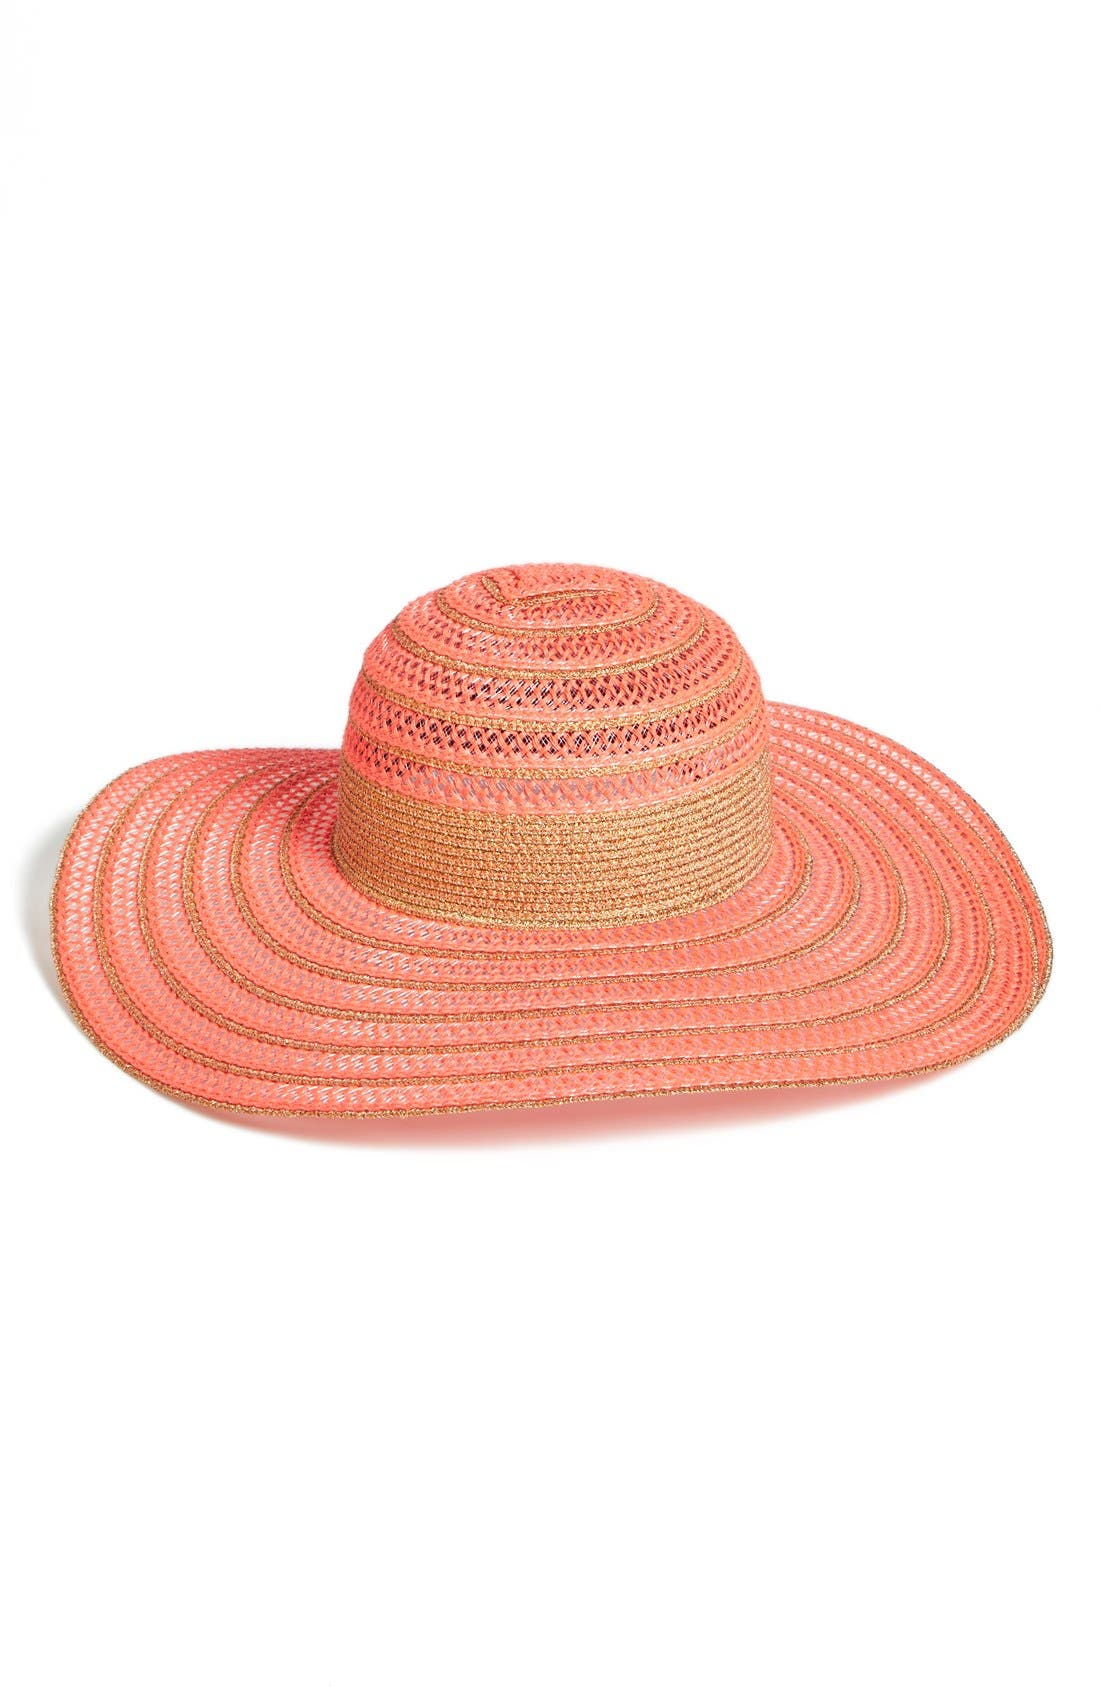 Main Image - PACKABLE METALLIC OPEN WEAVE FLOPPY HAT